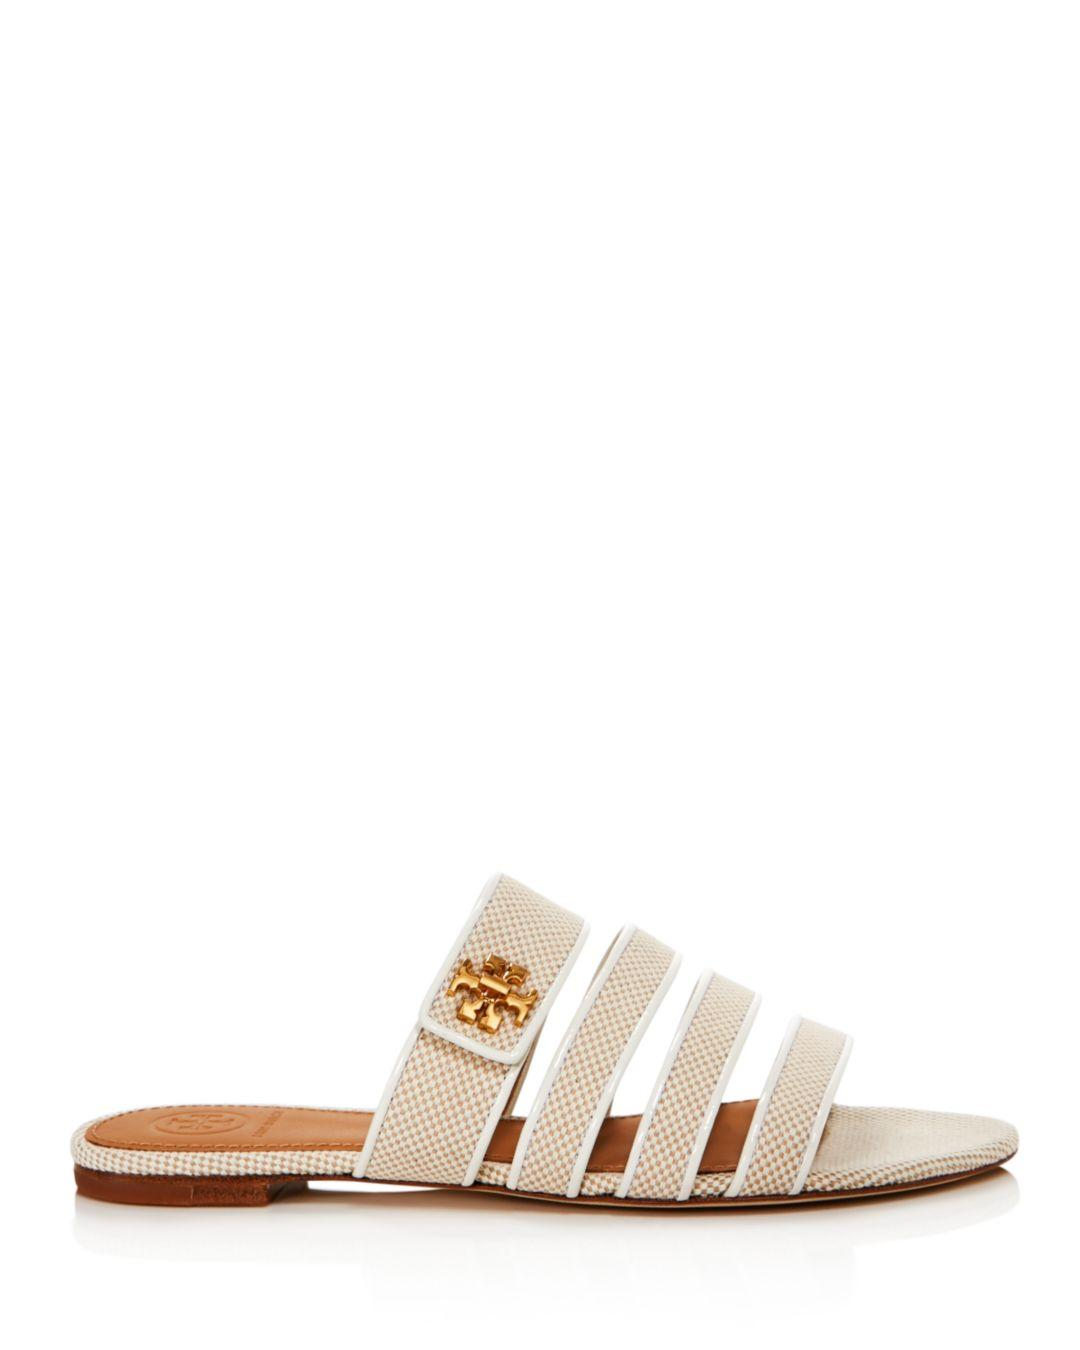 c423af486 Lyst - Tory Burch Kira Canvas Sandals in Natural